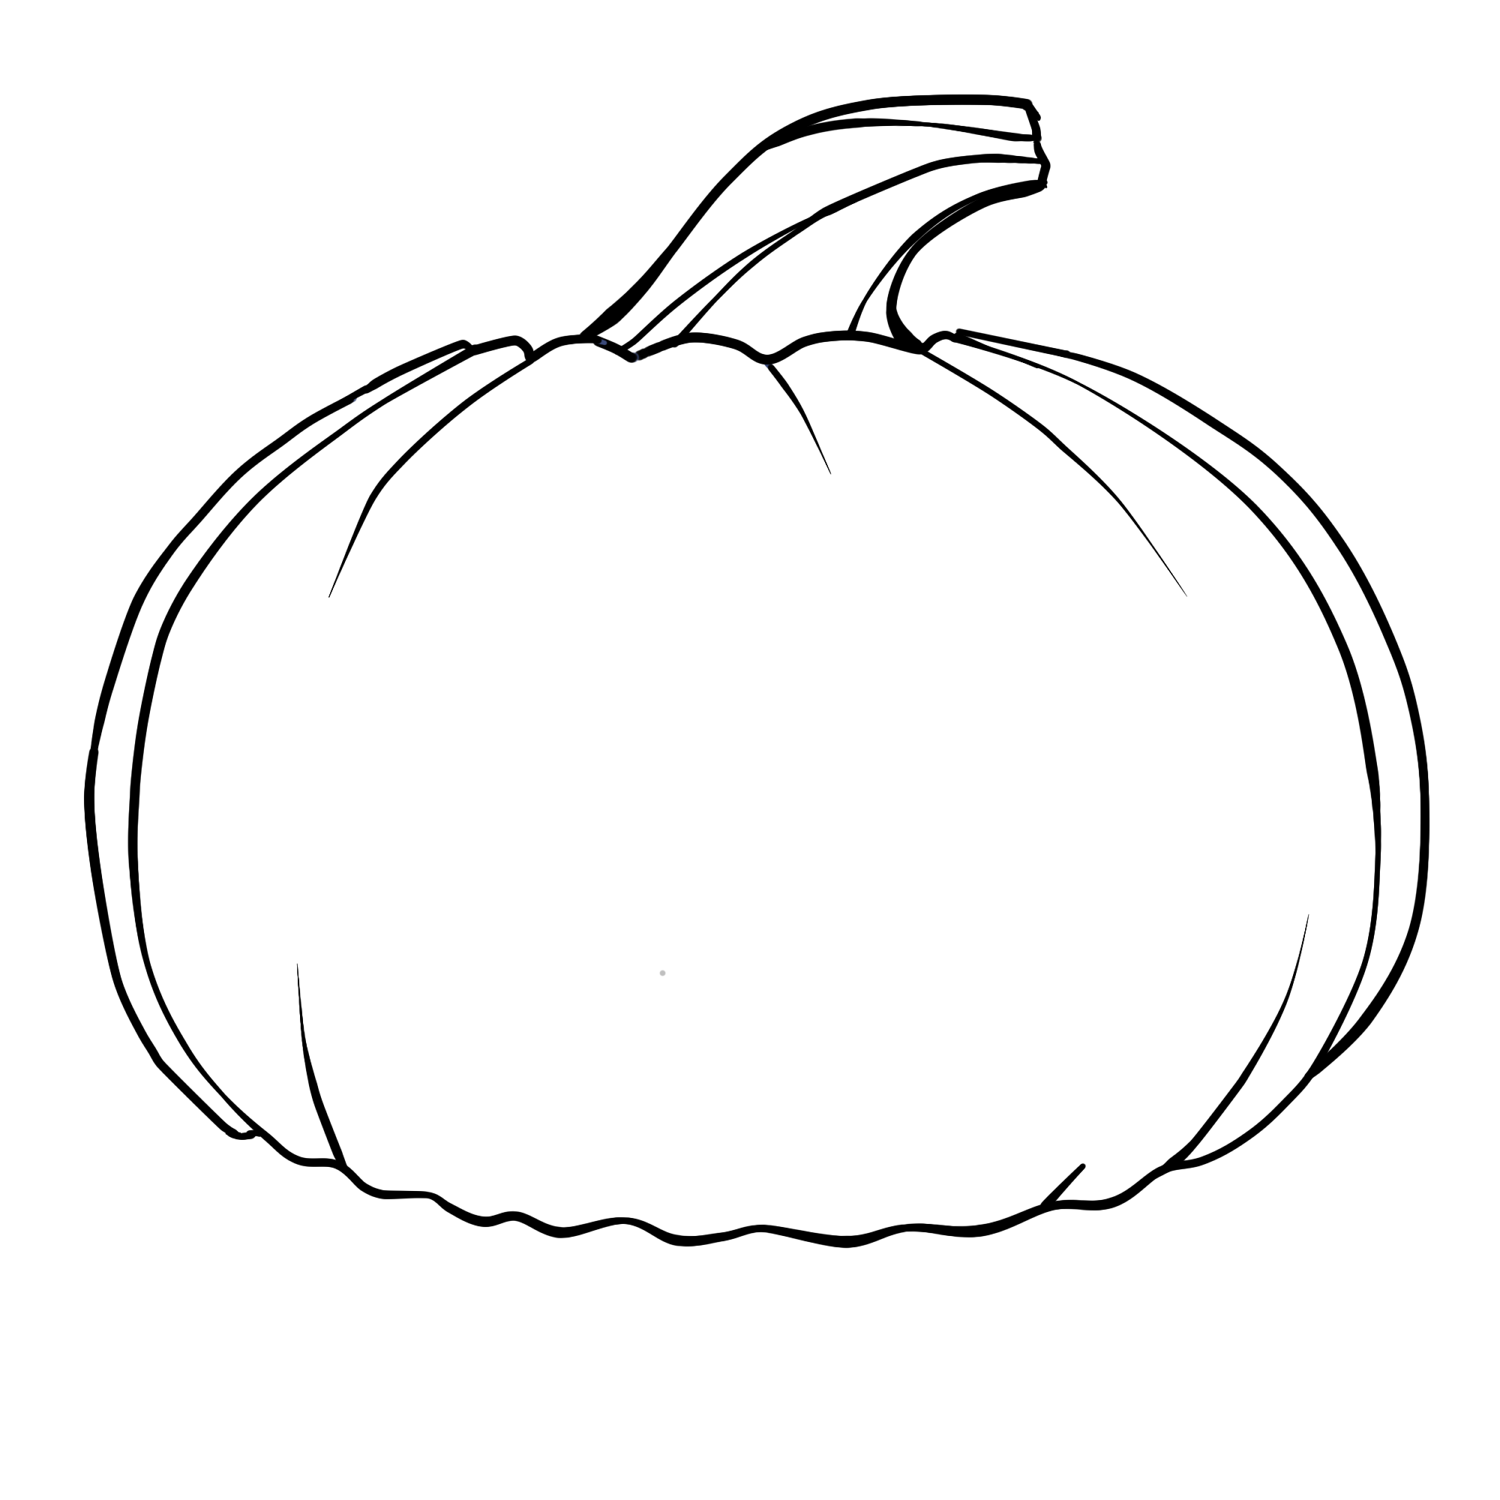 Pumpkin coloring pages for kids - Simple Shapes Coloring Pages Free Printable Pumpkin Coloring Pages For Kids